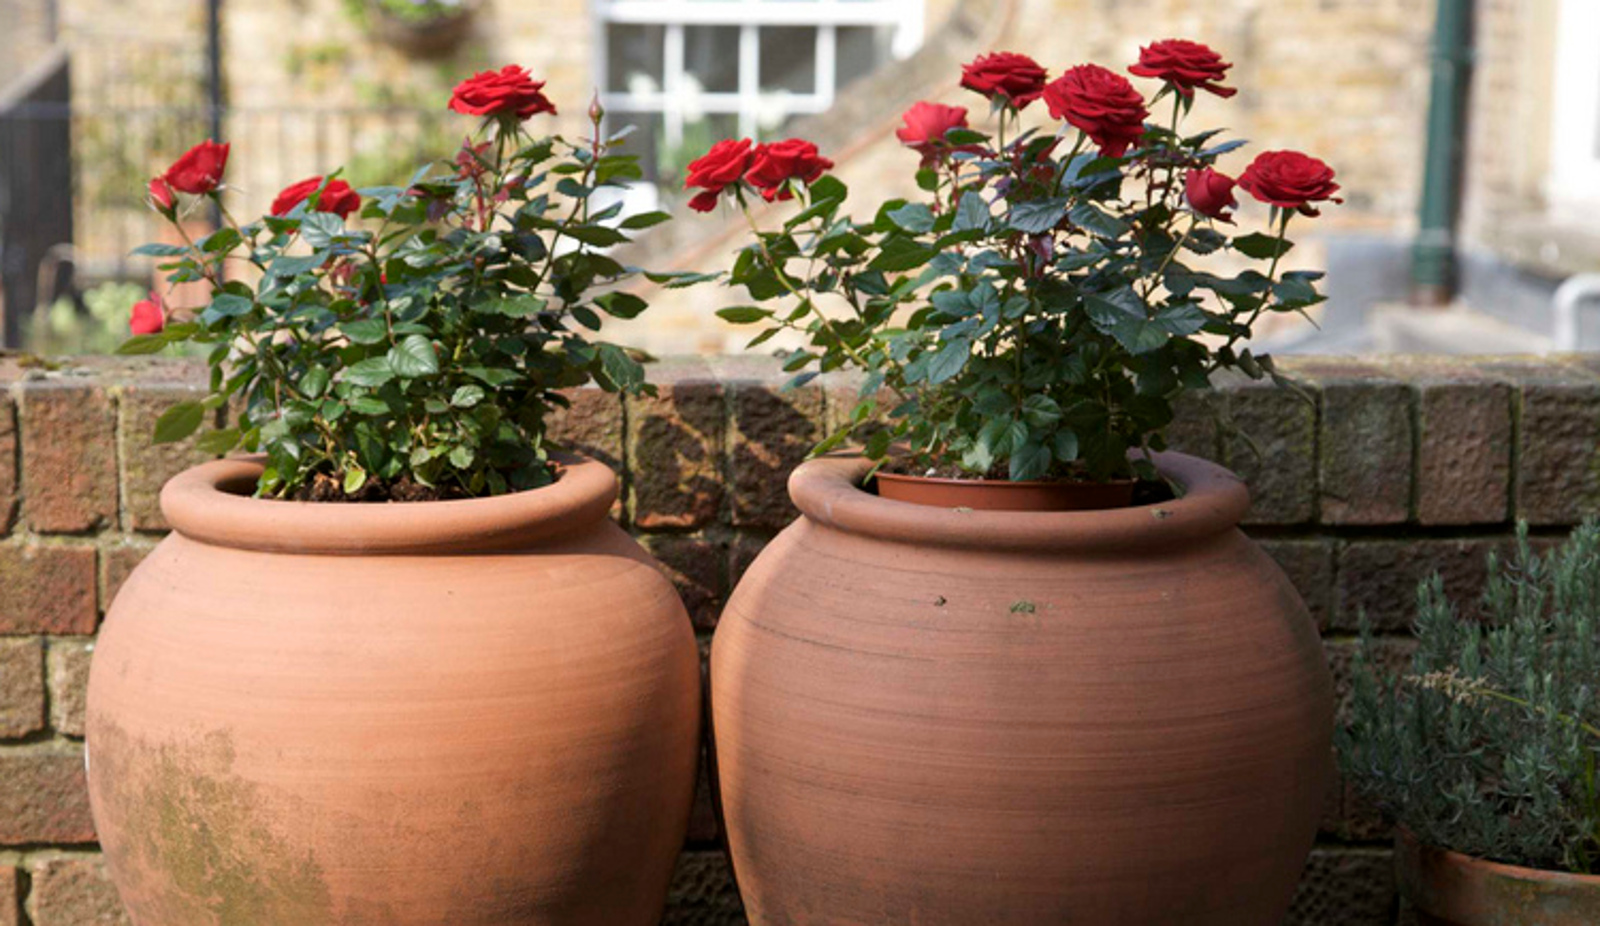 What It Takes to Make a Good Potting Mix at Home